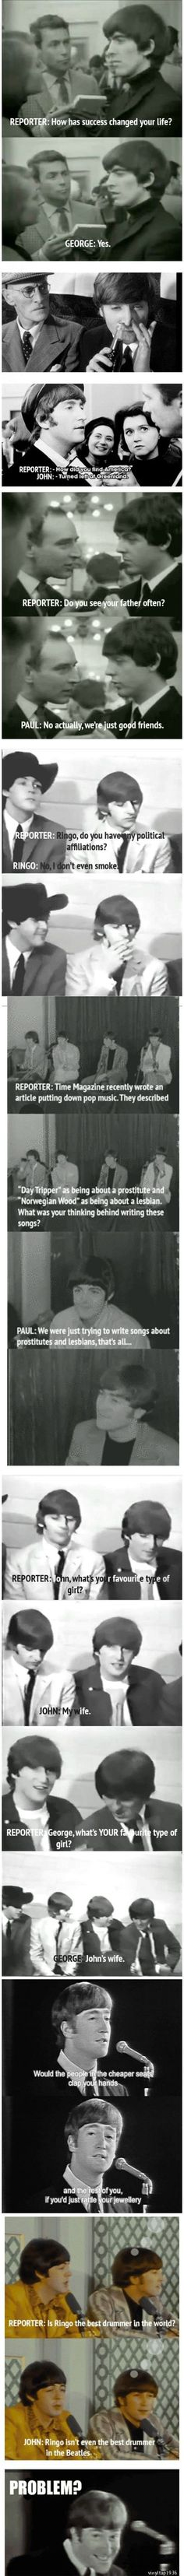 "Haha! ""Ringo isn't even the best drummer in the Beatles"" lol"